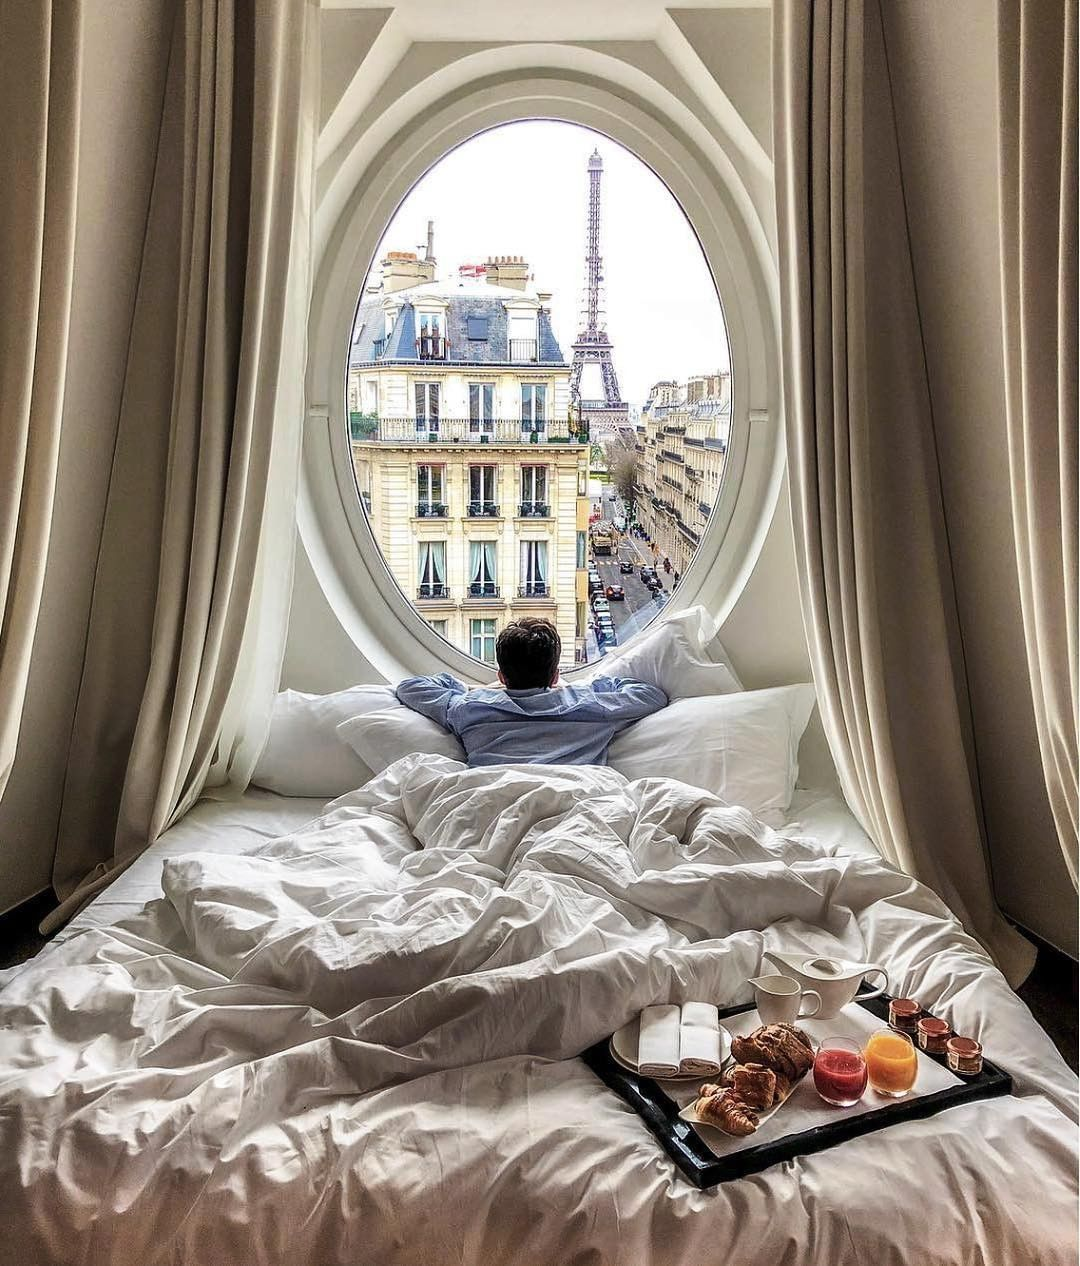 Un temps à rester au lit, pas vrai ? ❄️ . 📍Paris, France . 📷 @followthenap . #LeMetropolitanParis #paris #france #naptime #sleep #paris #hotellife #roomwithaview #igers #postcardsfromtheworld #luxuryhotel #besthotel #hotellife #luxuryhotels #hotelsandresorts #naturephotography #wonderful_places #amazingearth #placestogo #bestplacestogo #hotels #beautifuldestinations #beautifulhotels #vacations #travelandleisure #beautifulplaces #luxury #travel #luxurytravel #luxuryhotel 6 j